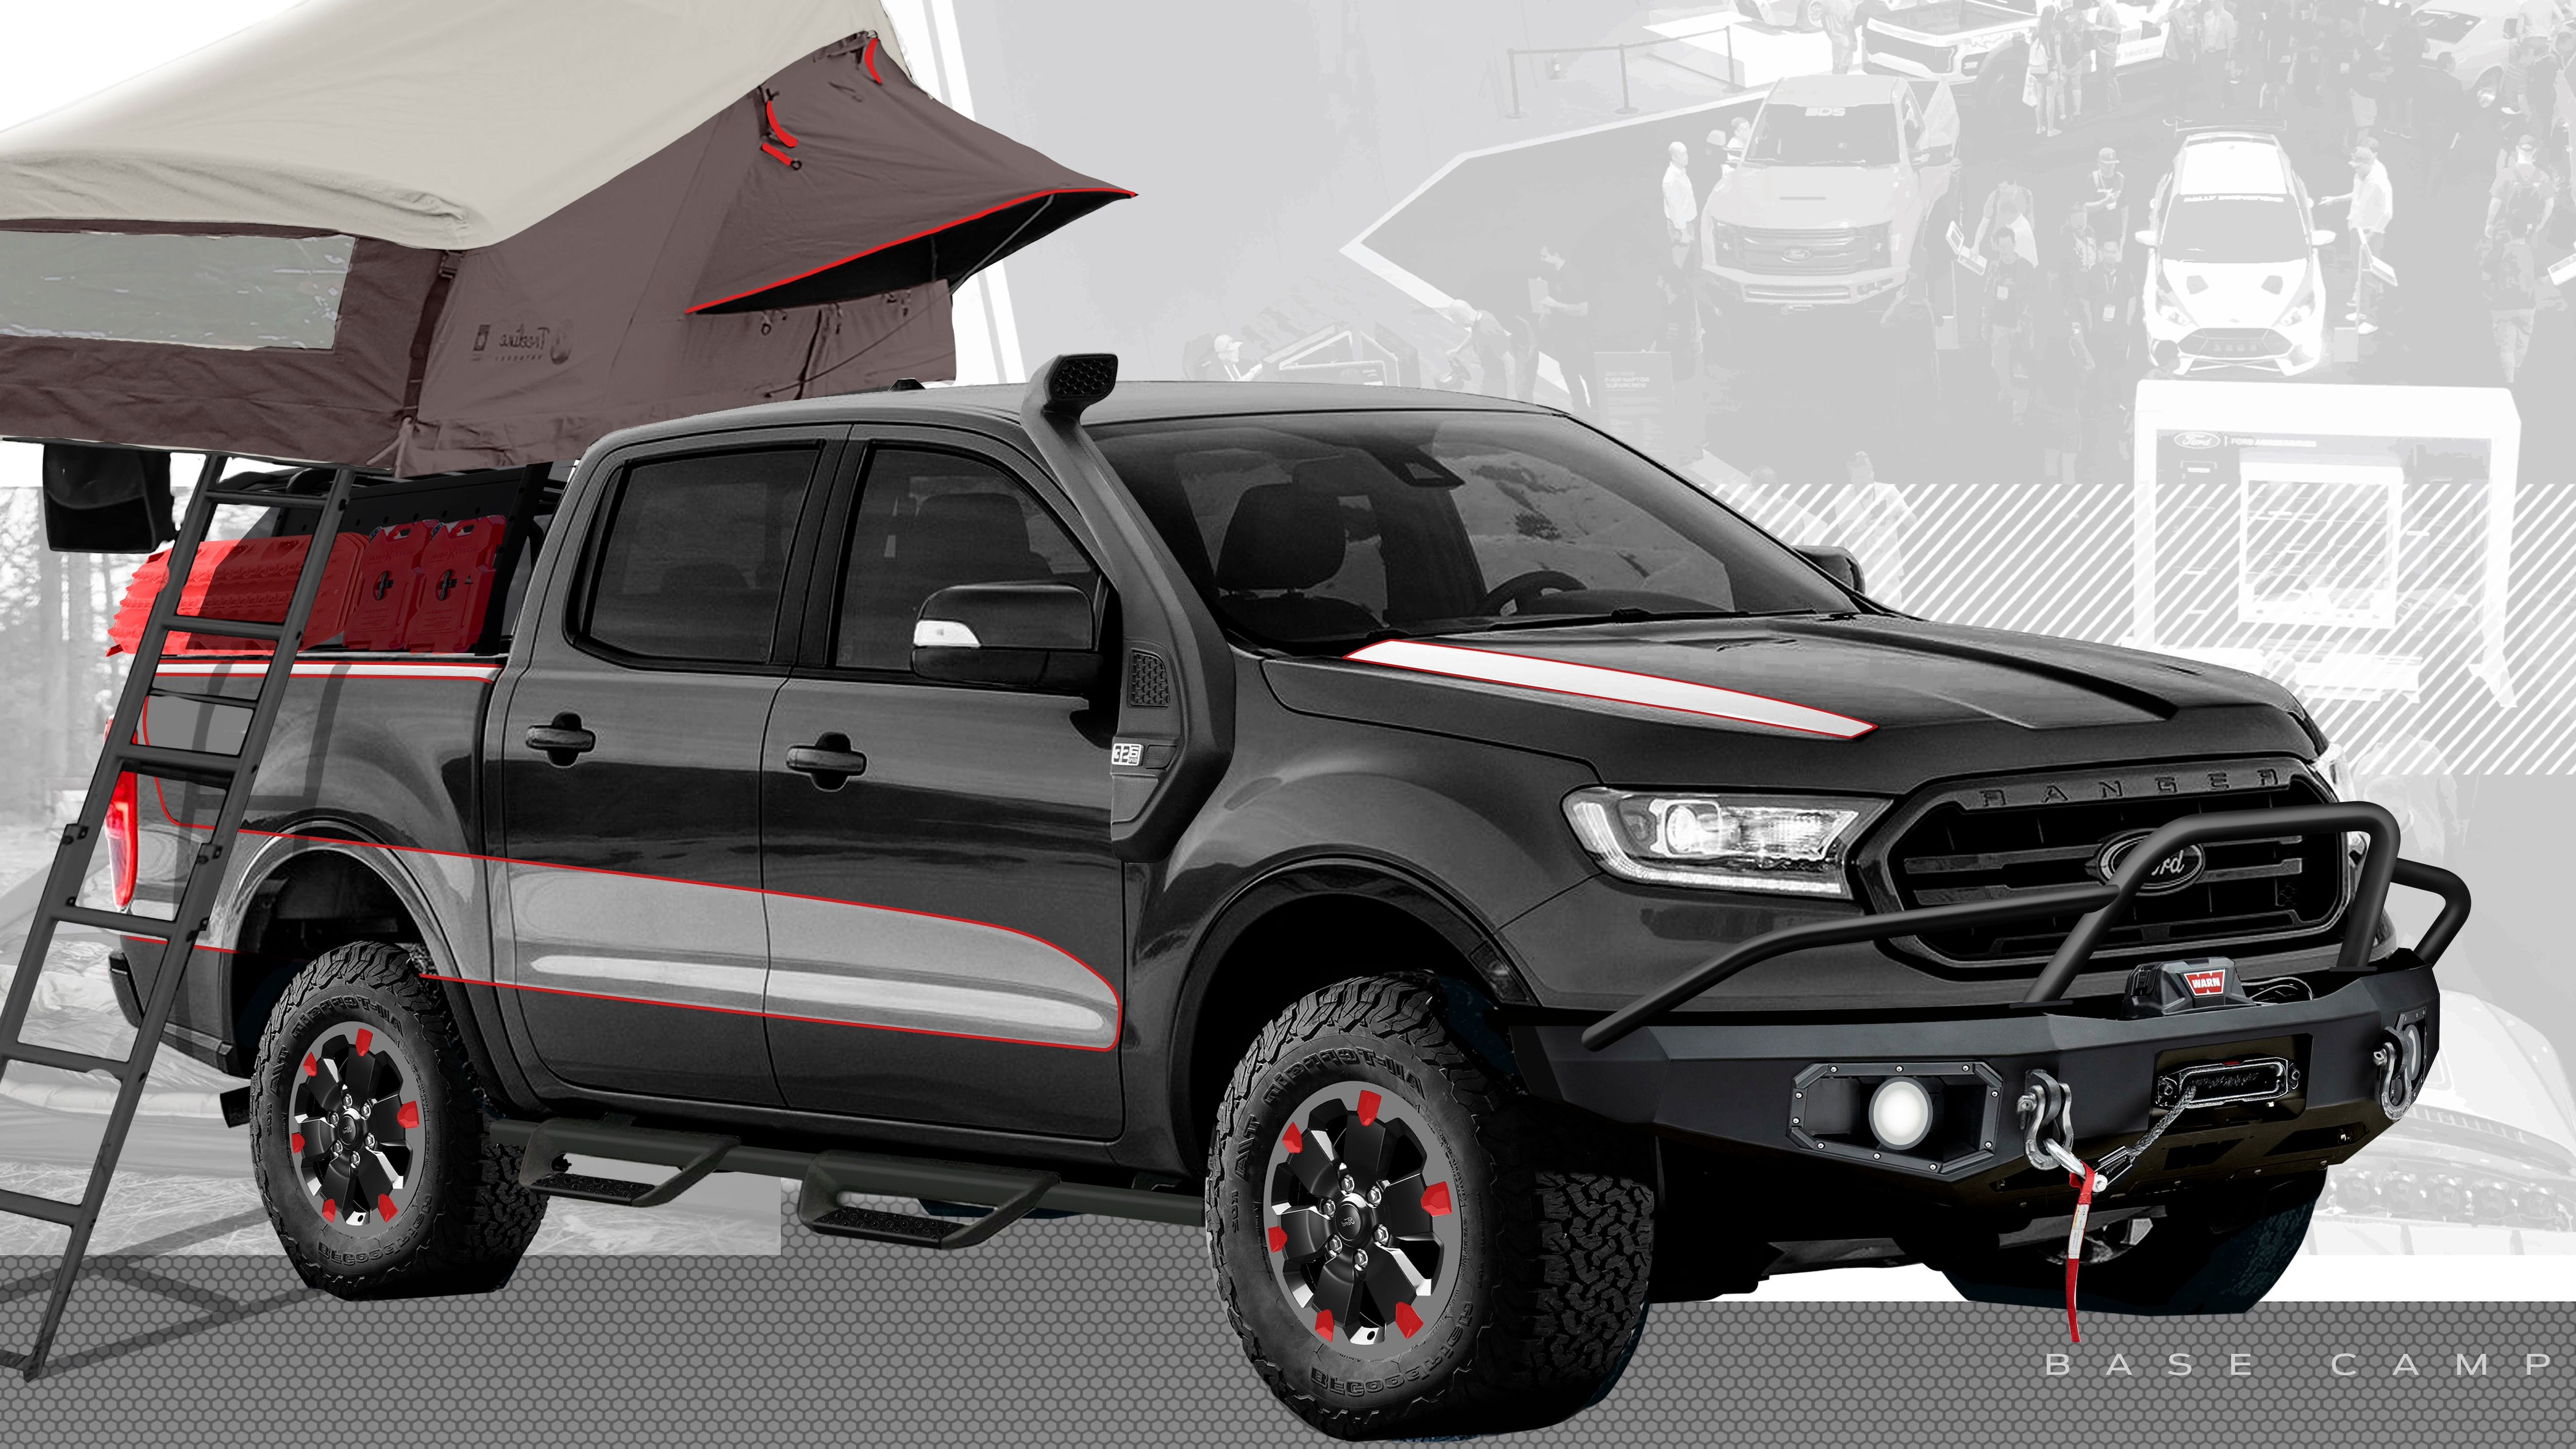 2019 Ford Ranger Headed To Sema Automobile Magazine